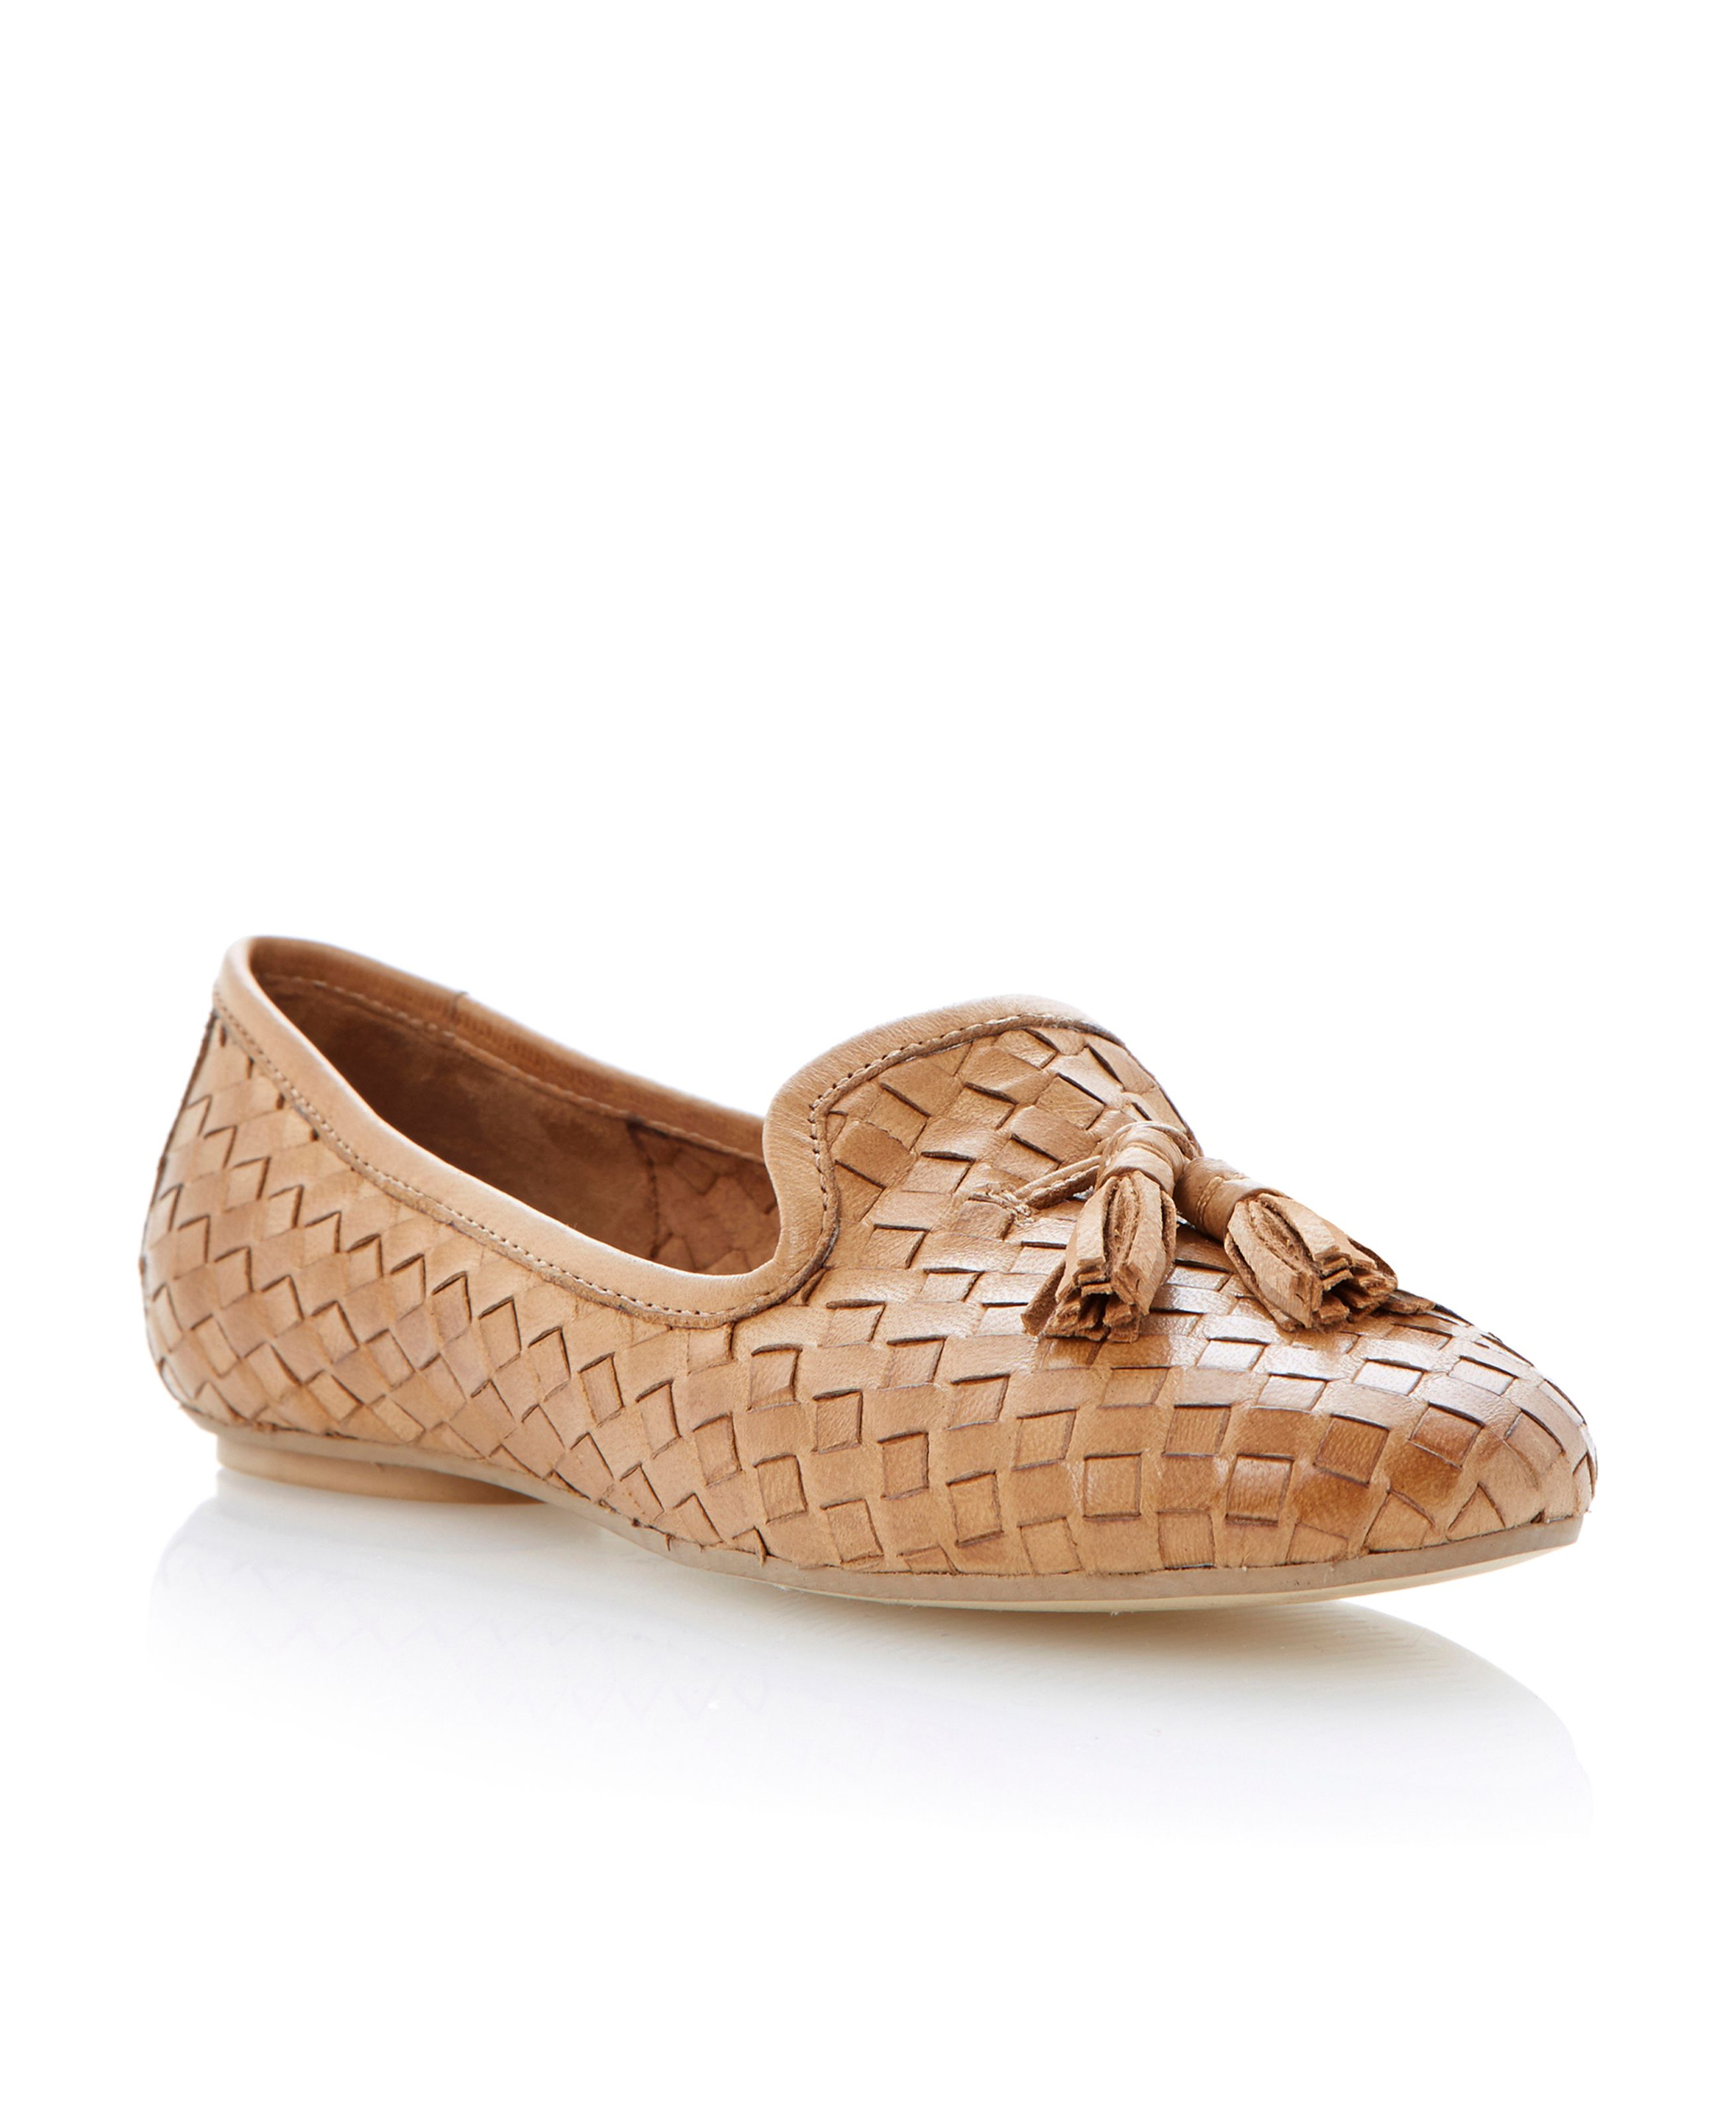 Lasso leather almond toe flat loafer shoes